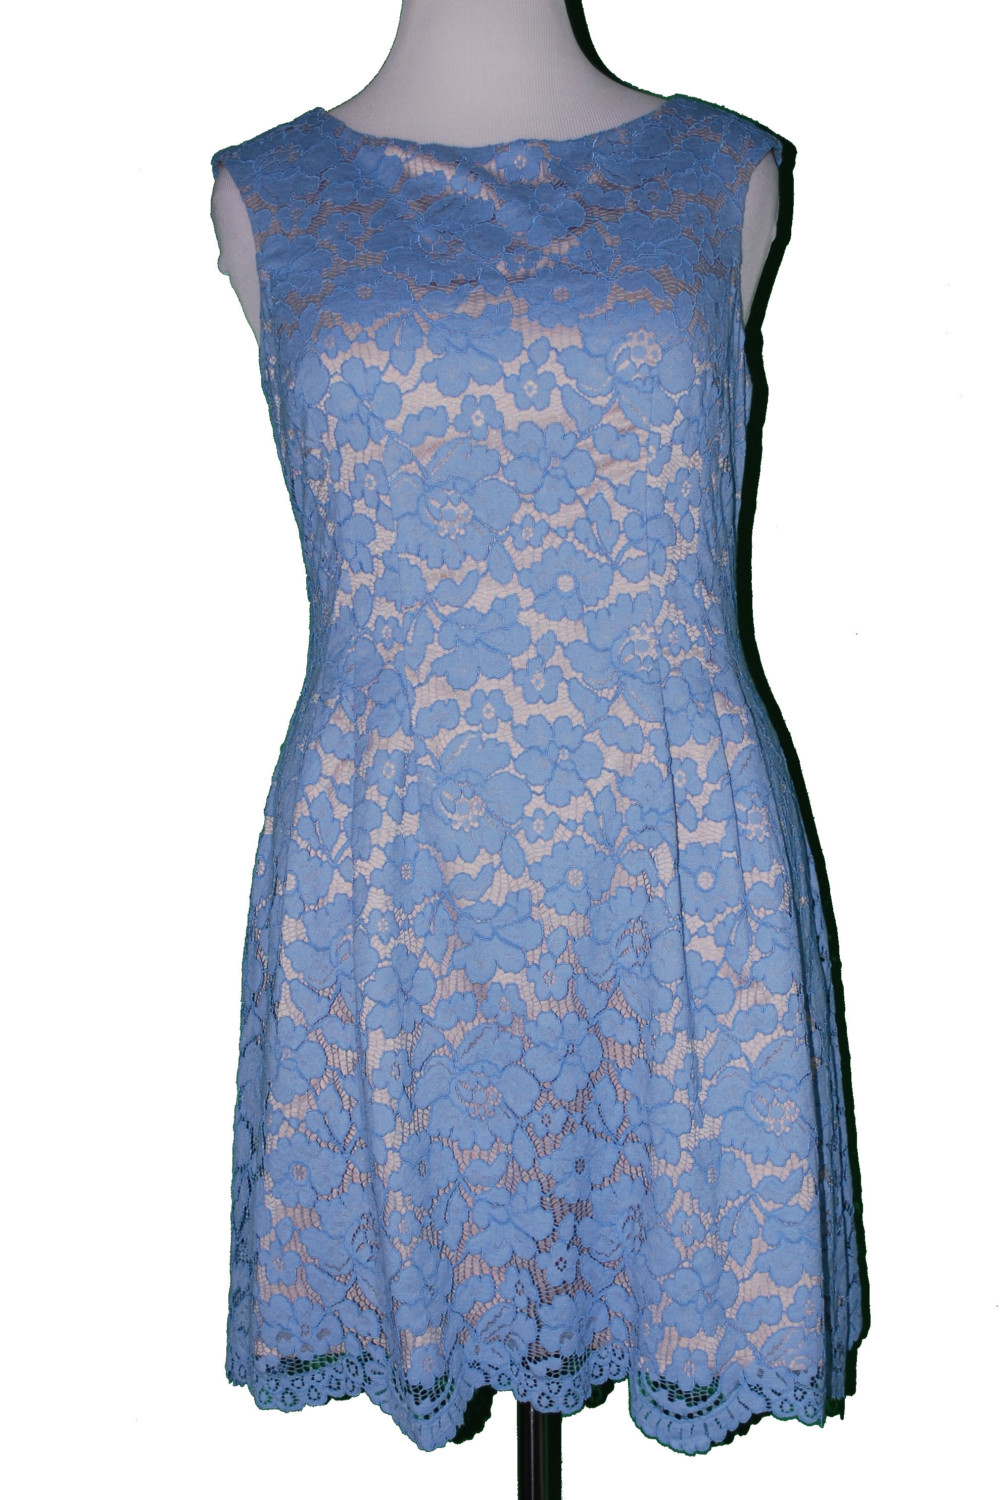 Vince Camuto Dress – Original Retail: $148, CWS: $39